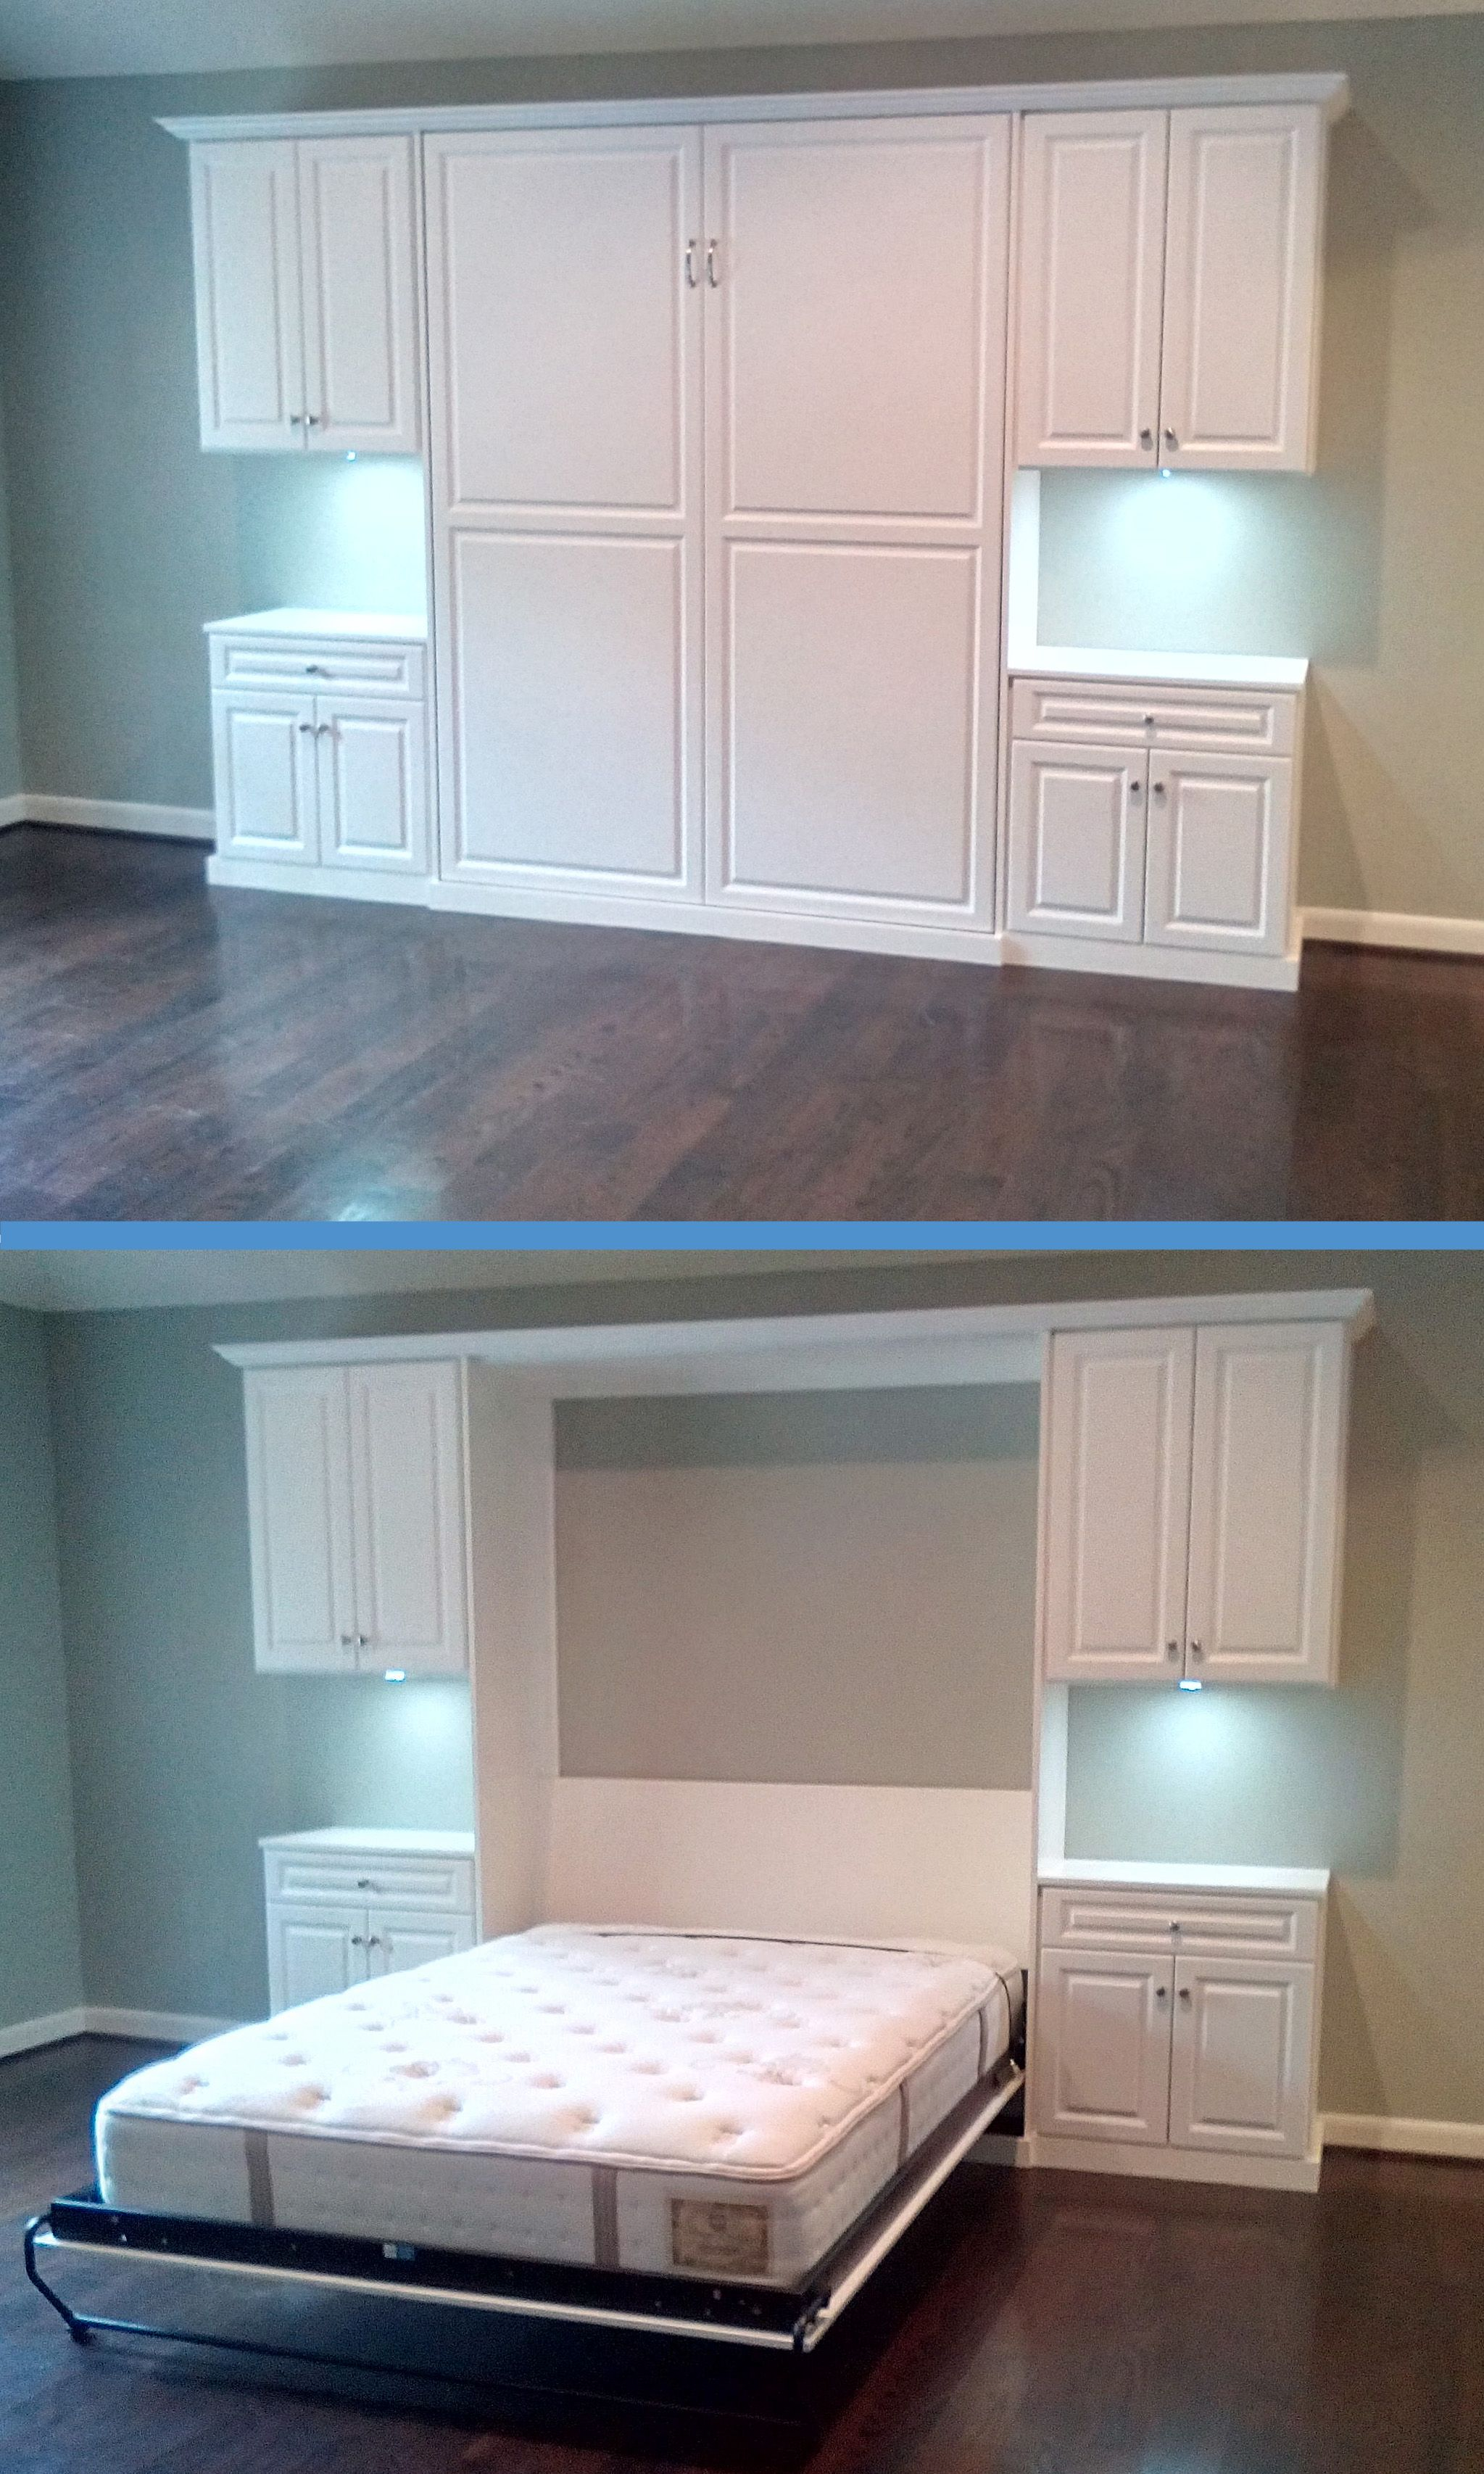 Murphy Beds are a great addition to any home Add an extra bedroom